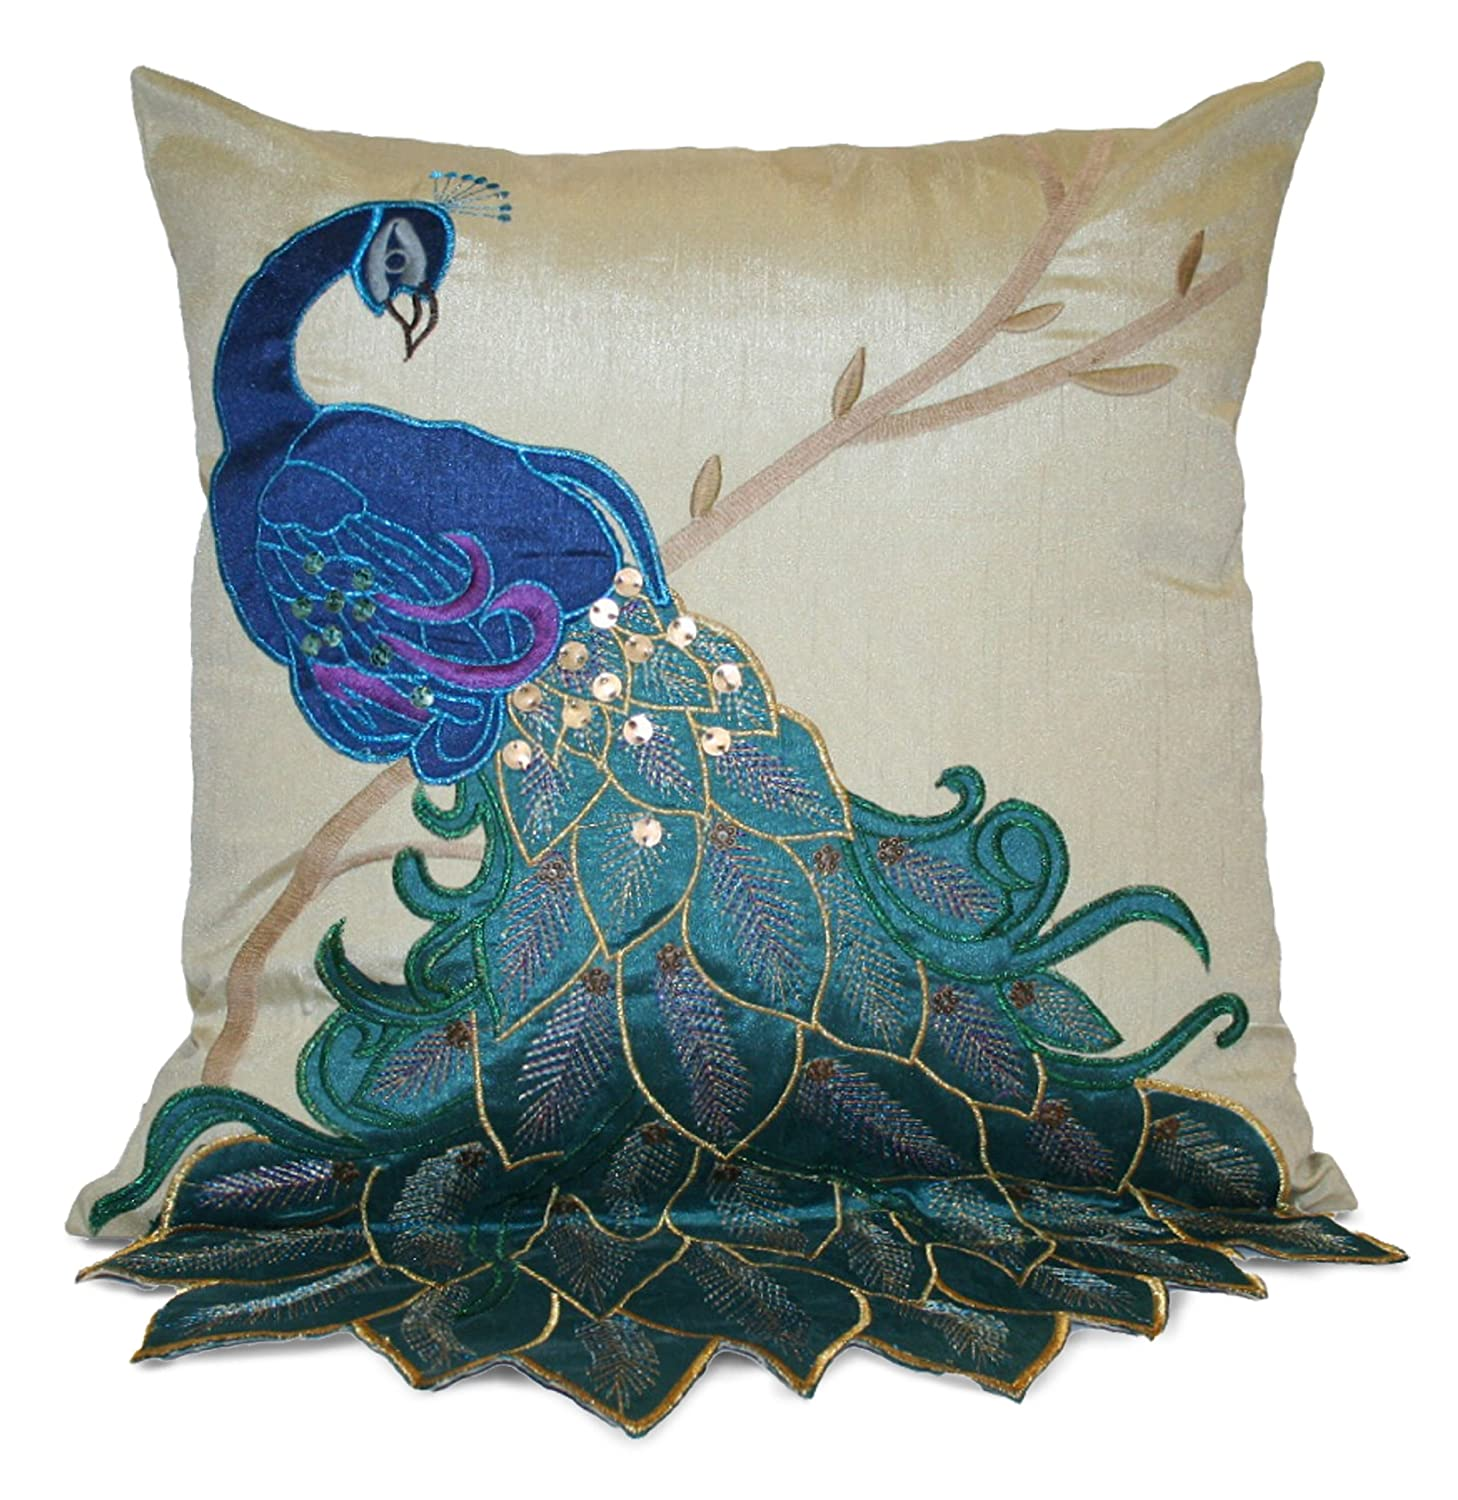 Decorative Pillows Covers  Decoration News